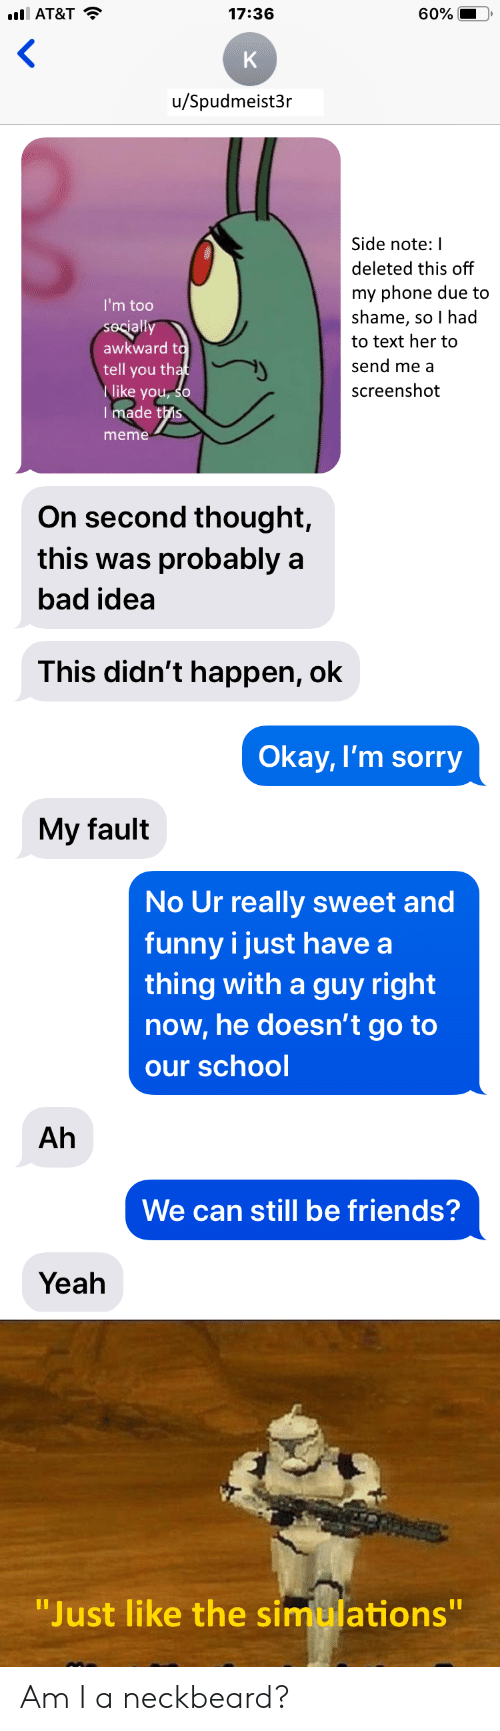 """Bad, Friends, and Funny: AT&T  17:36  60%  K  u/Spudmeist3r  Side note: I  deleted this off  my phone due to  shame, so I had  I'm too  secially  awkward to  tell you that  like you, so  Tmade this  to text her to  send me a  screenshot  meme  On second thought,  this was probably a  bad idea  This didn't happen, ok  Okay, I'm sorry  My fault  No Ur really sweet and  funny i just have a  thing with a guy right  now,he doesn't go to  our school  Ah  We can still be friends?  Yeah  """"Just like the simulations""""  11 Am I a neckbeard?"""